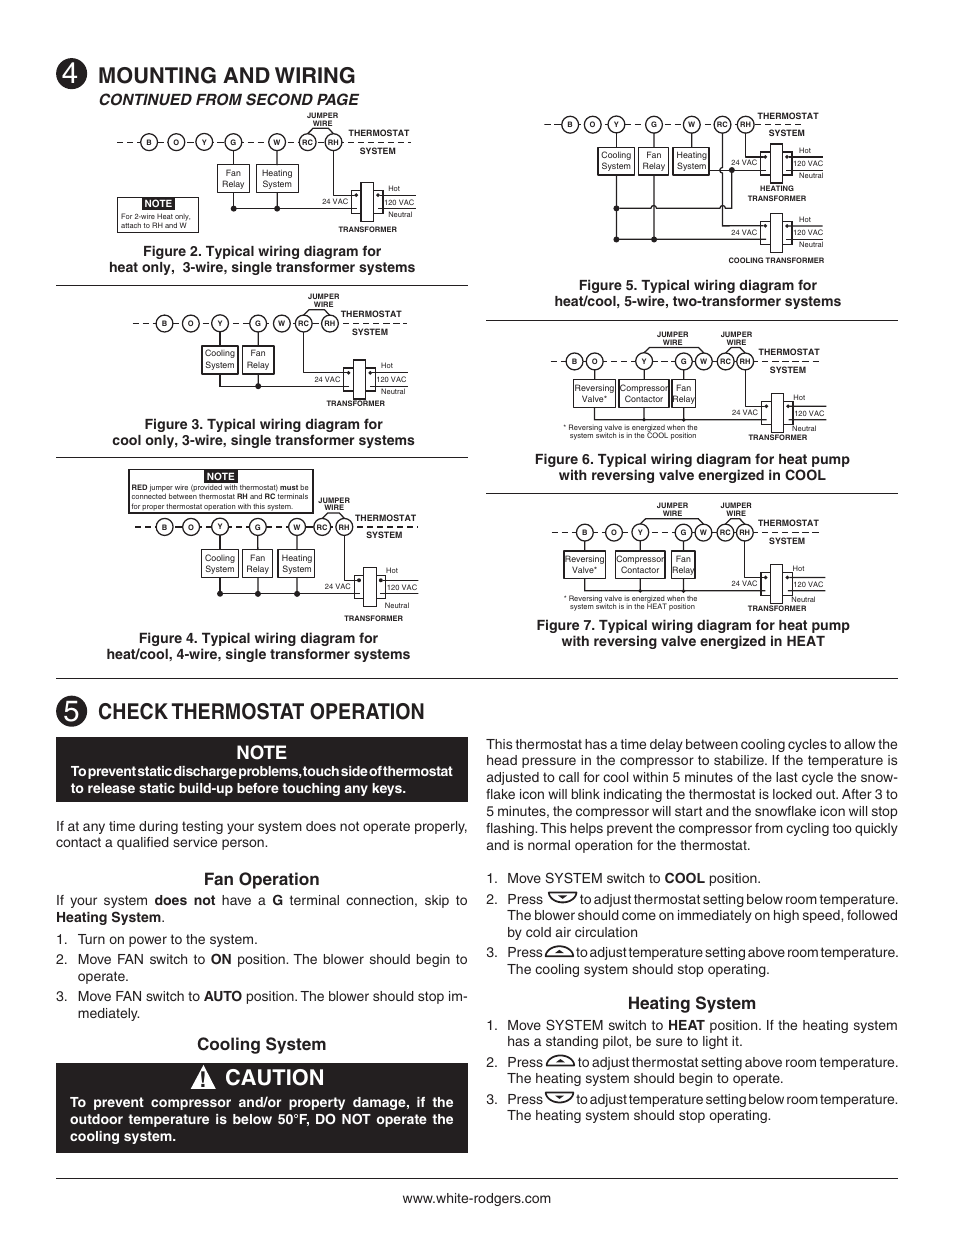 Check Thermostat Operation  Mounting And Wiring  Caution